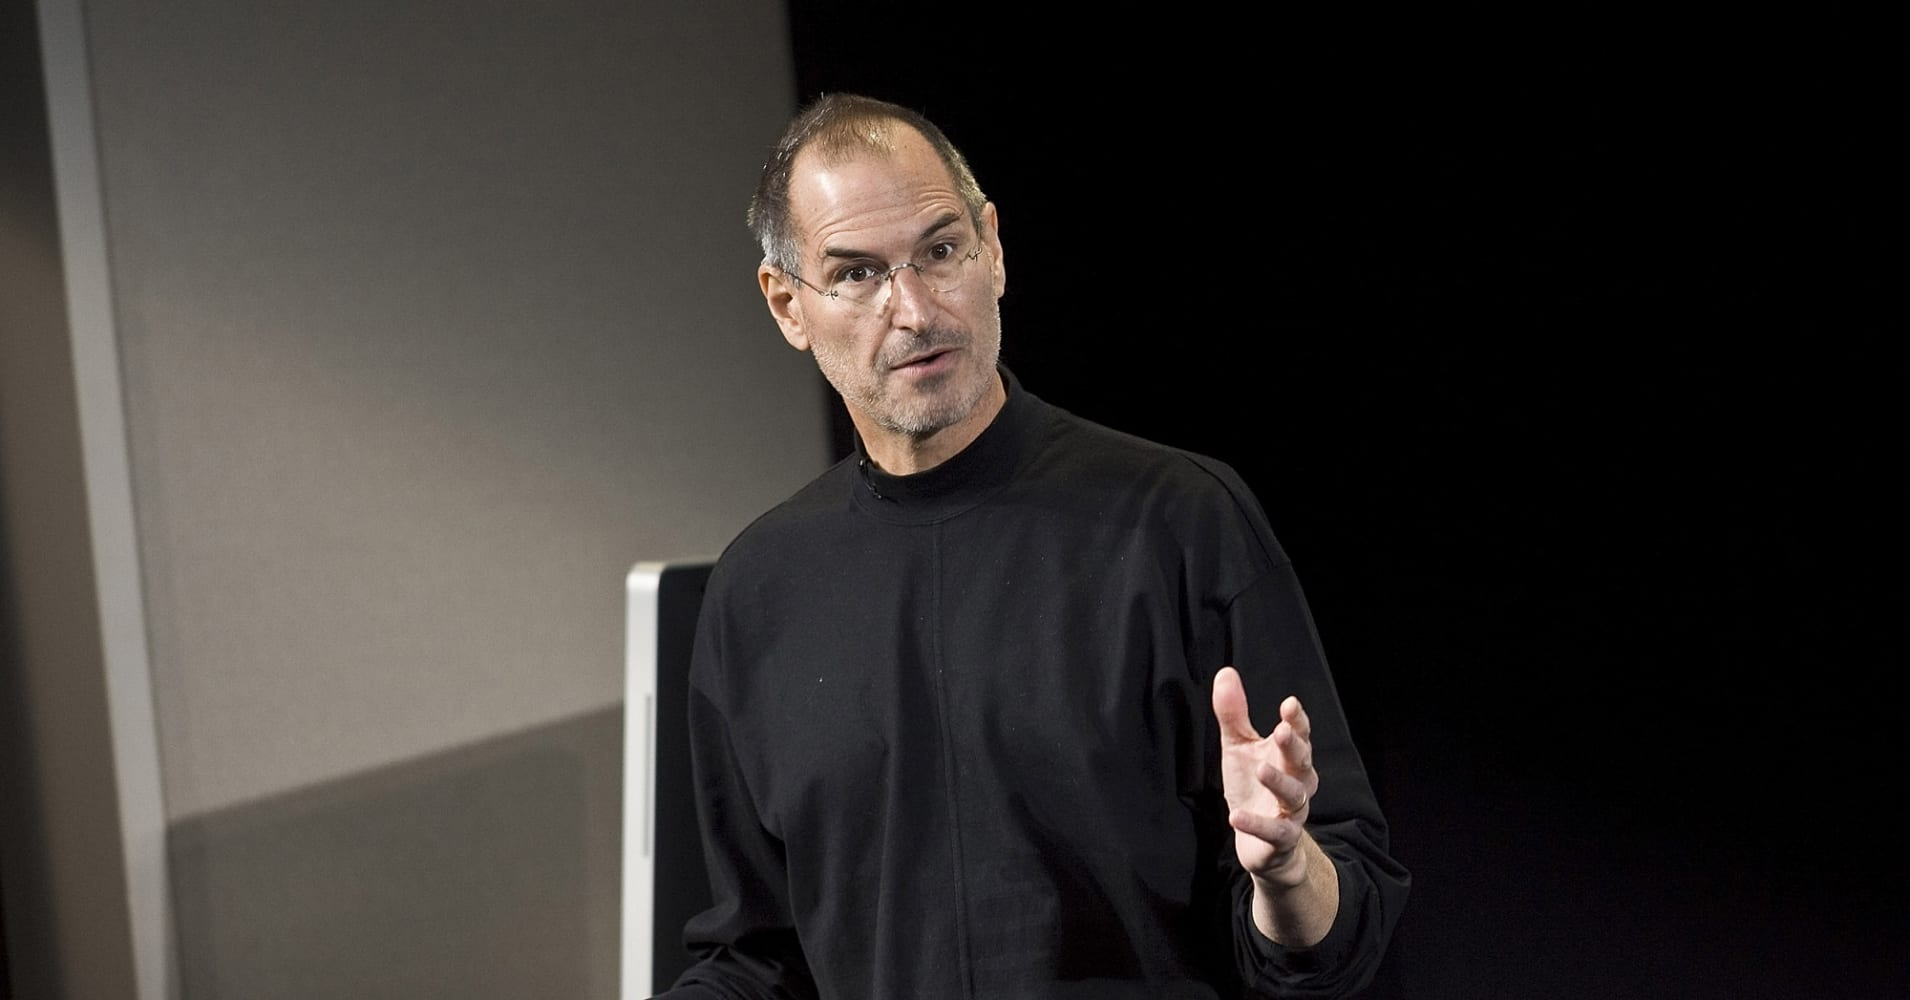 an introduction to the life and history by steve jobs Steve jobs [walter isaacson, dylan  left and it was very interesting to have a behind the scenes view of the apple history  overview of steve's life and.